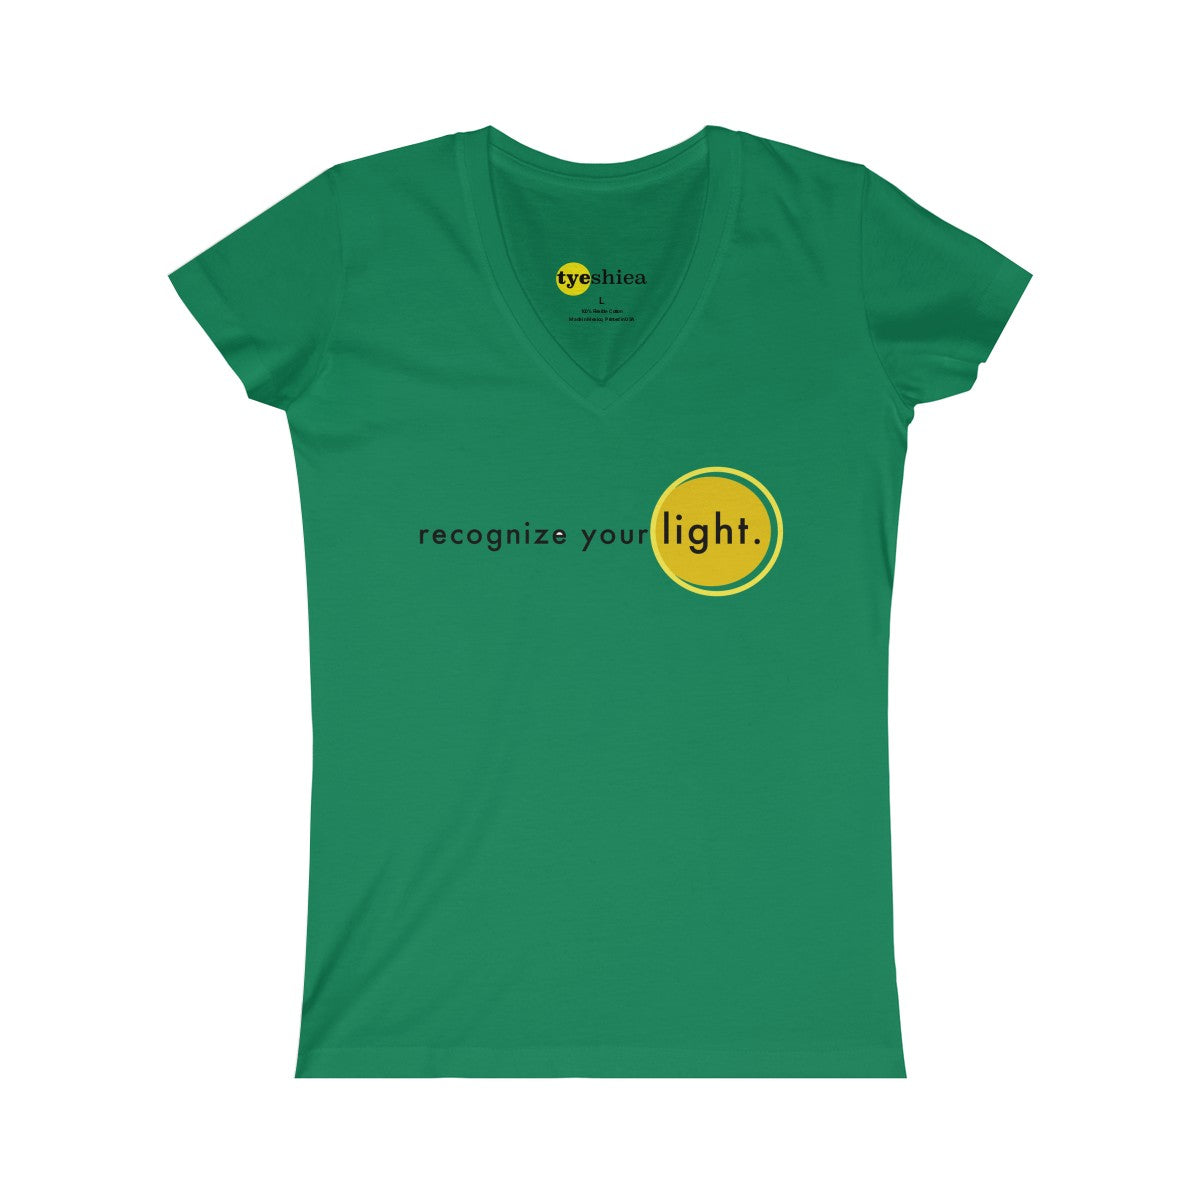 recognize your light... Women's Fine Jersey V-neck Tee